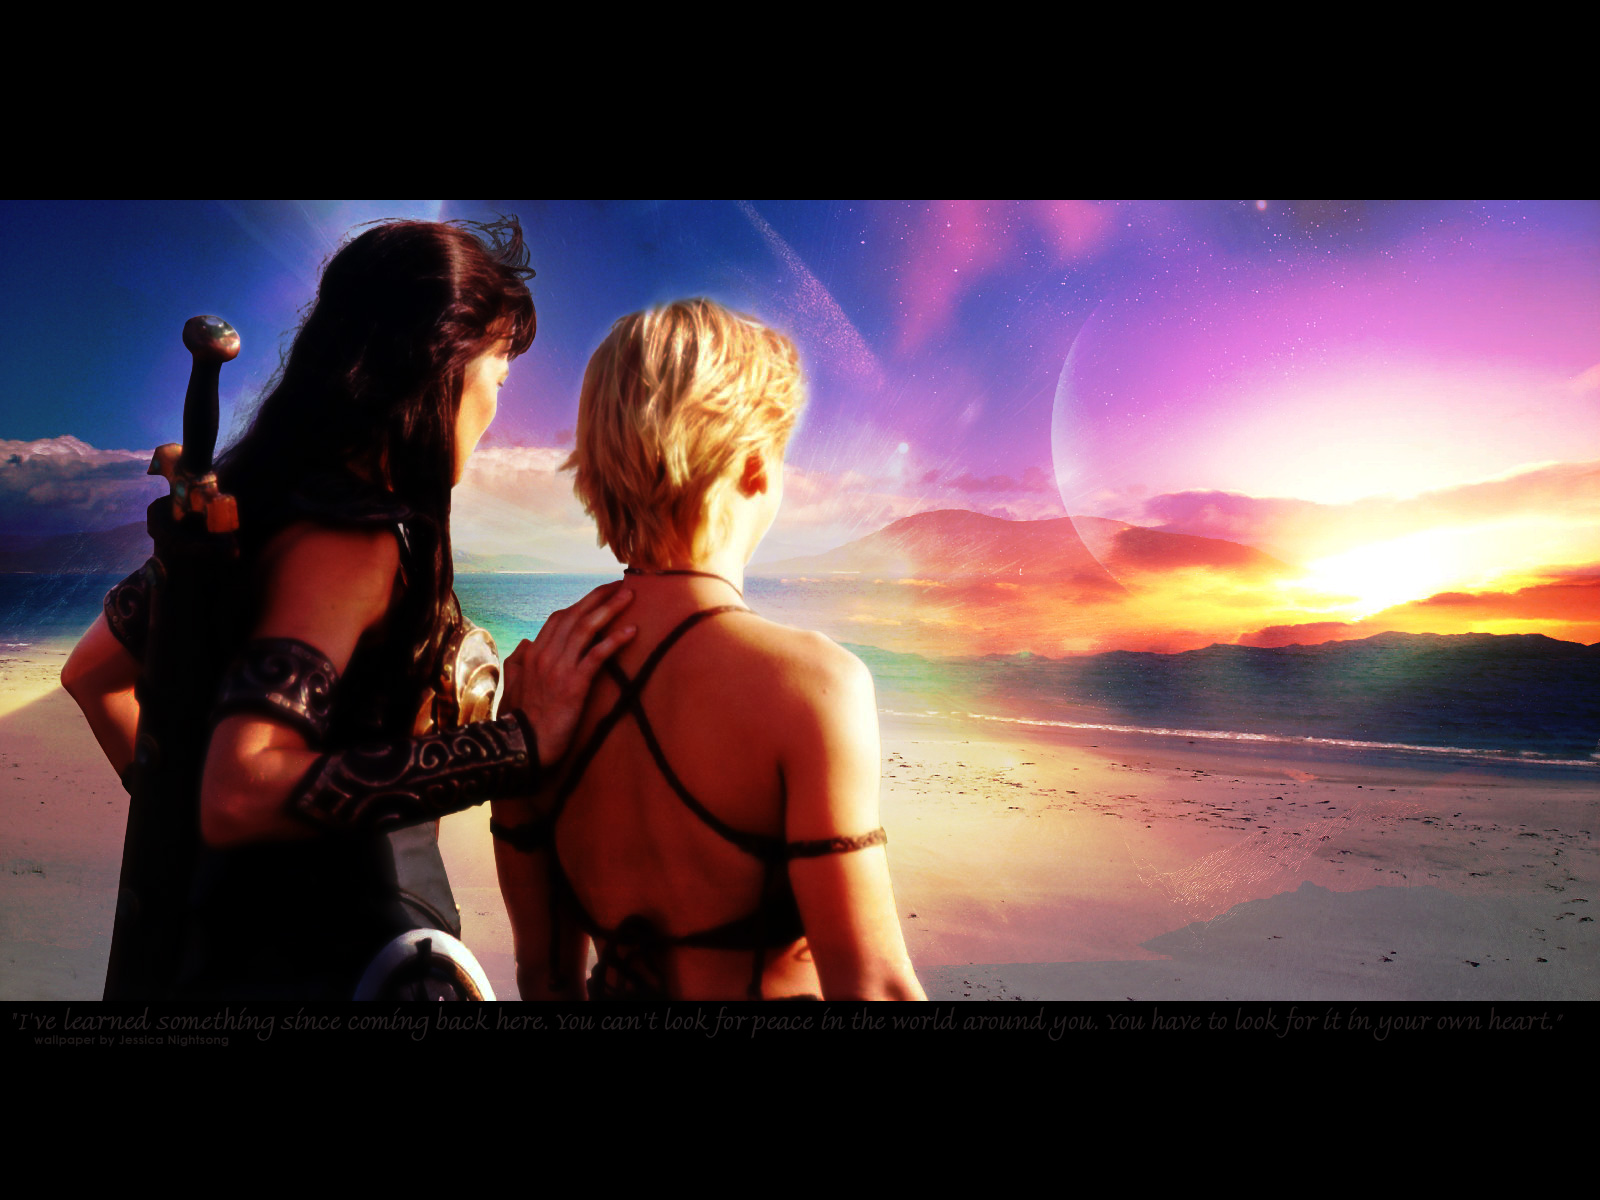 Xena & Gabrielle images Xena & Gabrielle HD wallpaper and background ...